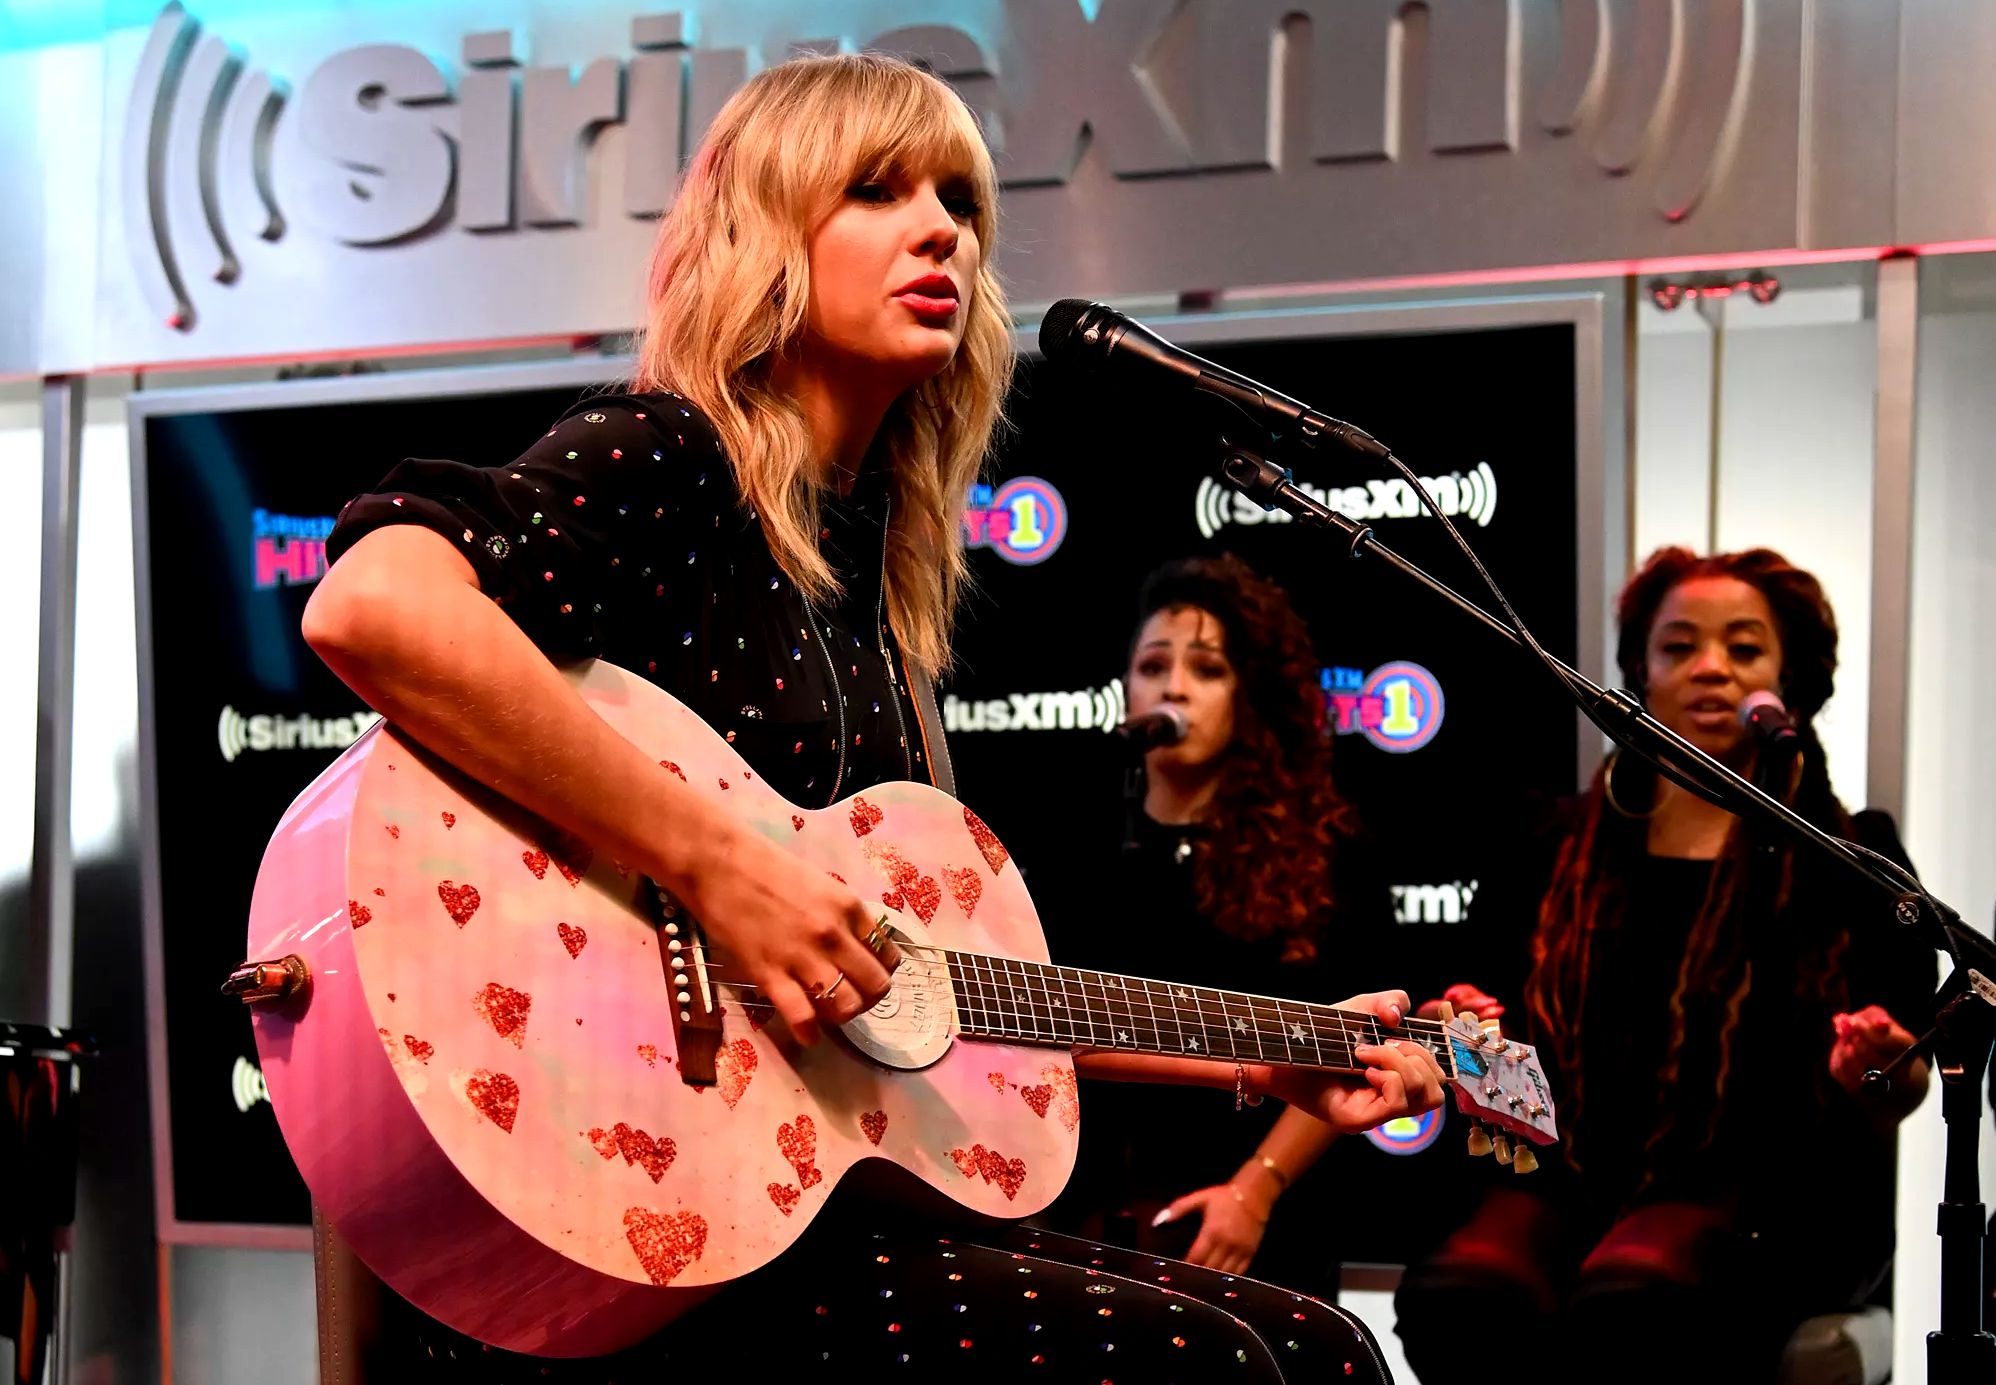 NEW YORK, NEW YORK - AUGUST 23: Taylor Swift performs during her SiriusXM's Town Hall Special at SiriusXM Studios on August 23, 2019 in New York City.